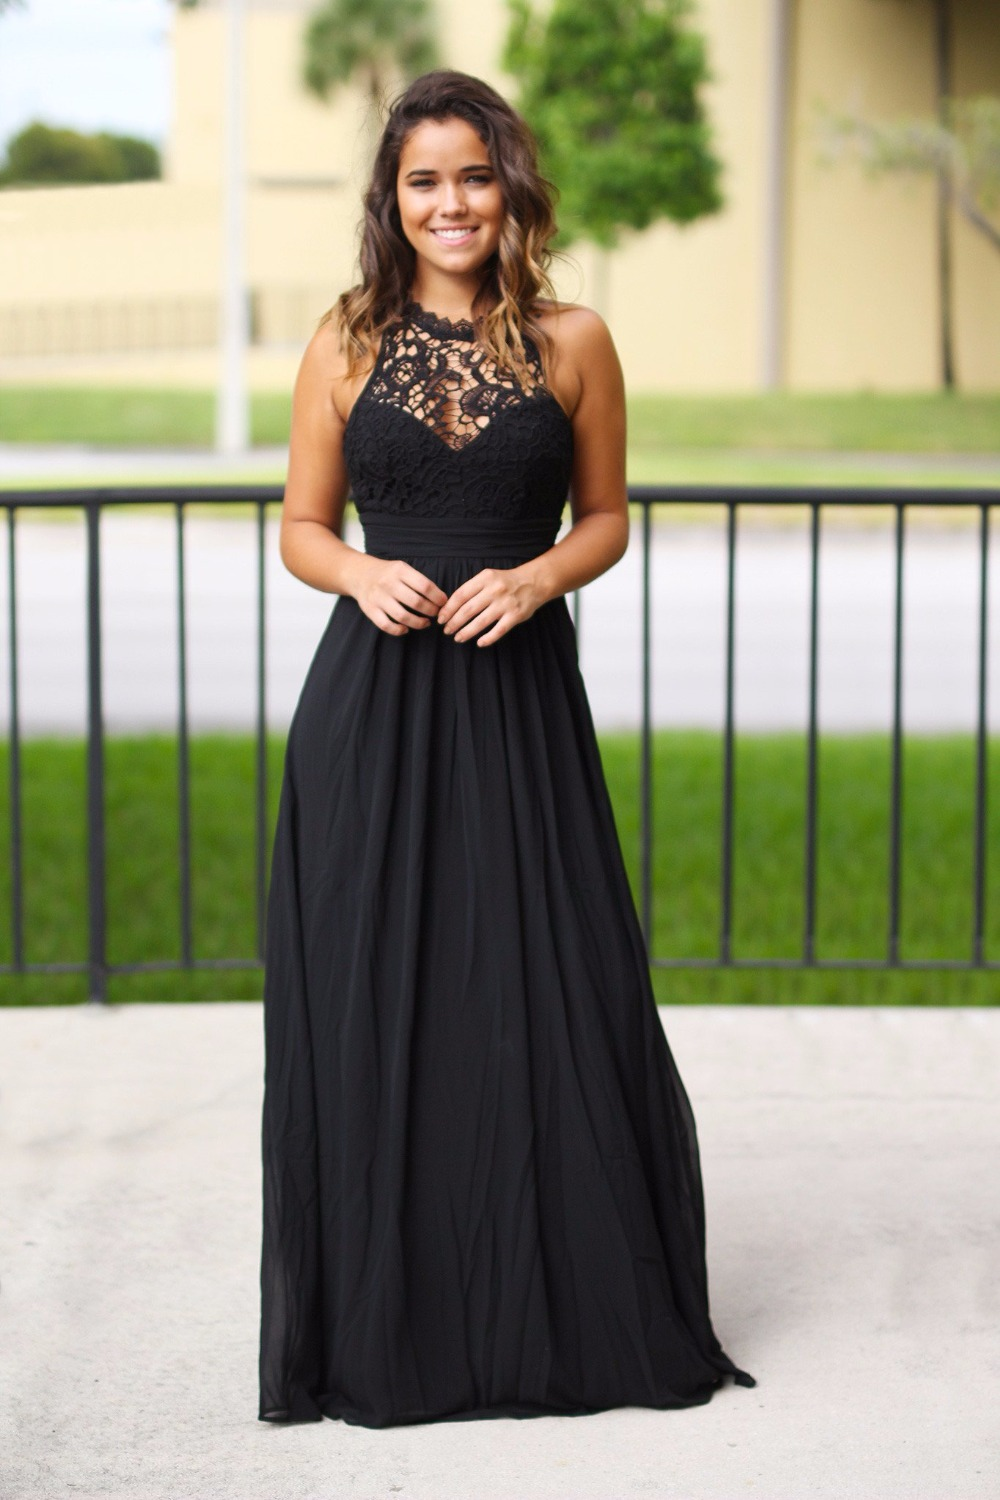 Black Maxi Long <font><b>Bridesmaid</b></font> <font><b>Dresses</b></font> Sleeveless <font><b>Sexy</b></font> Back Floor Length Beach Boho <font><b>Bridesmaid</b></font> Gowns Custom Made Country Style image